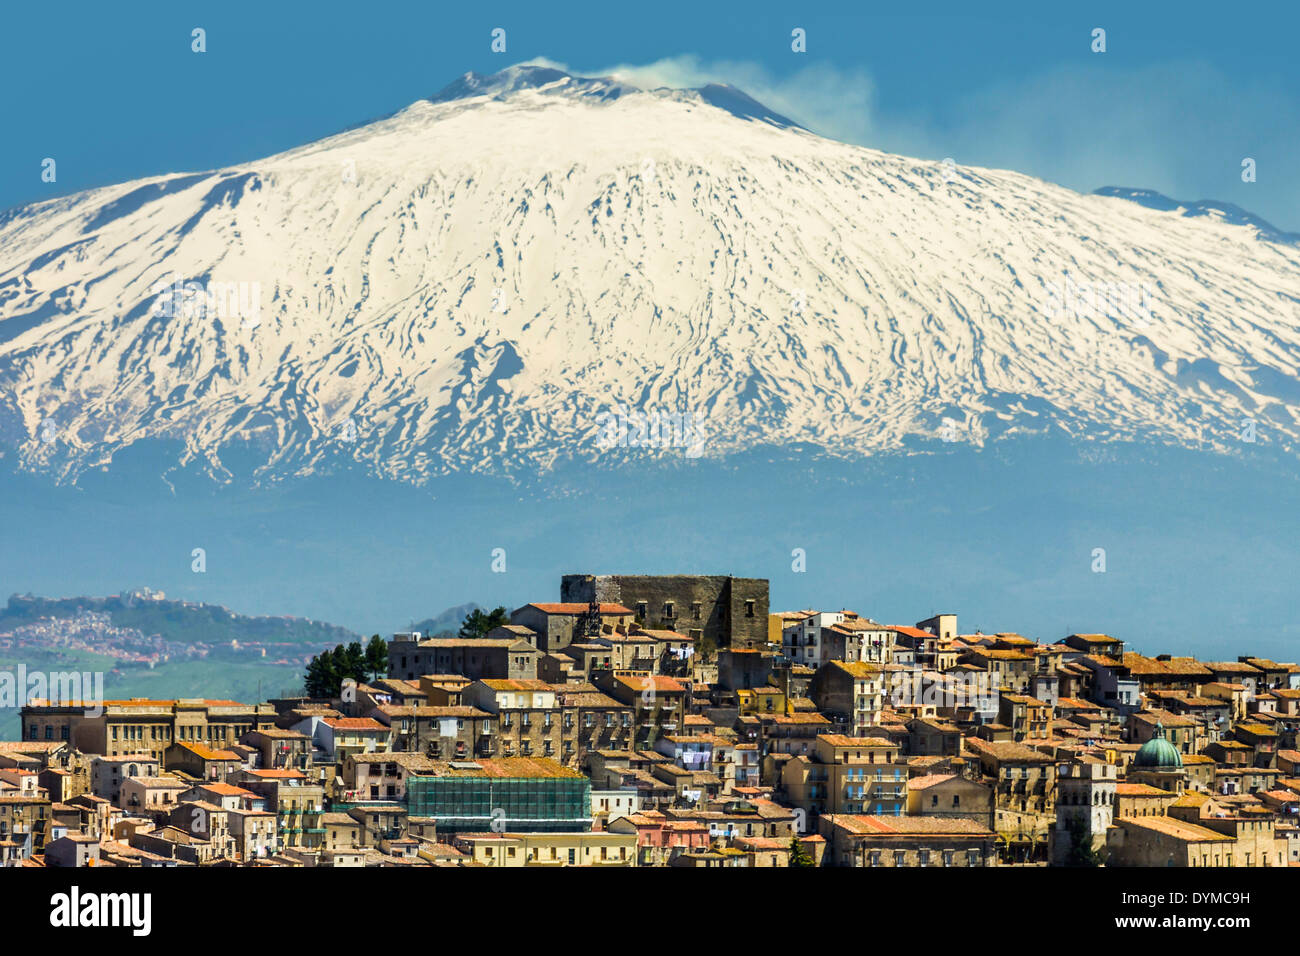 Hill town with backdrop of snowy volcano Mount Etna; Gangi was a common Mafia last name; Gangi, Palermo Province, Sicily, Ital - Stock Image